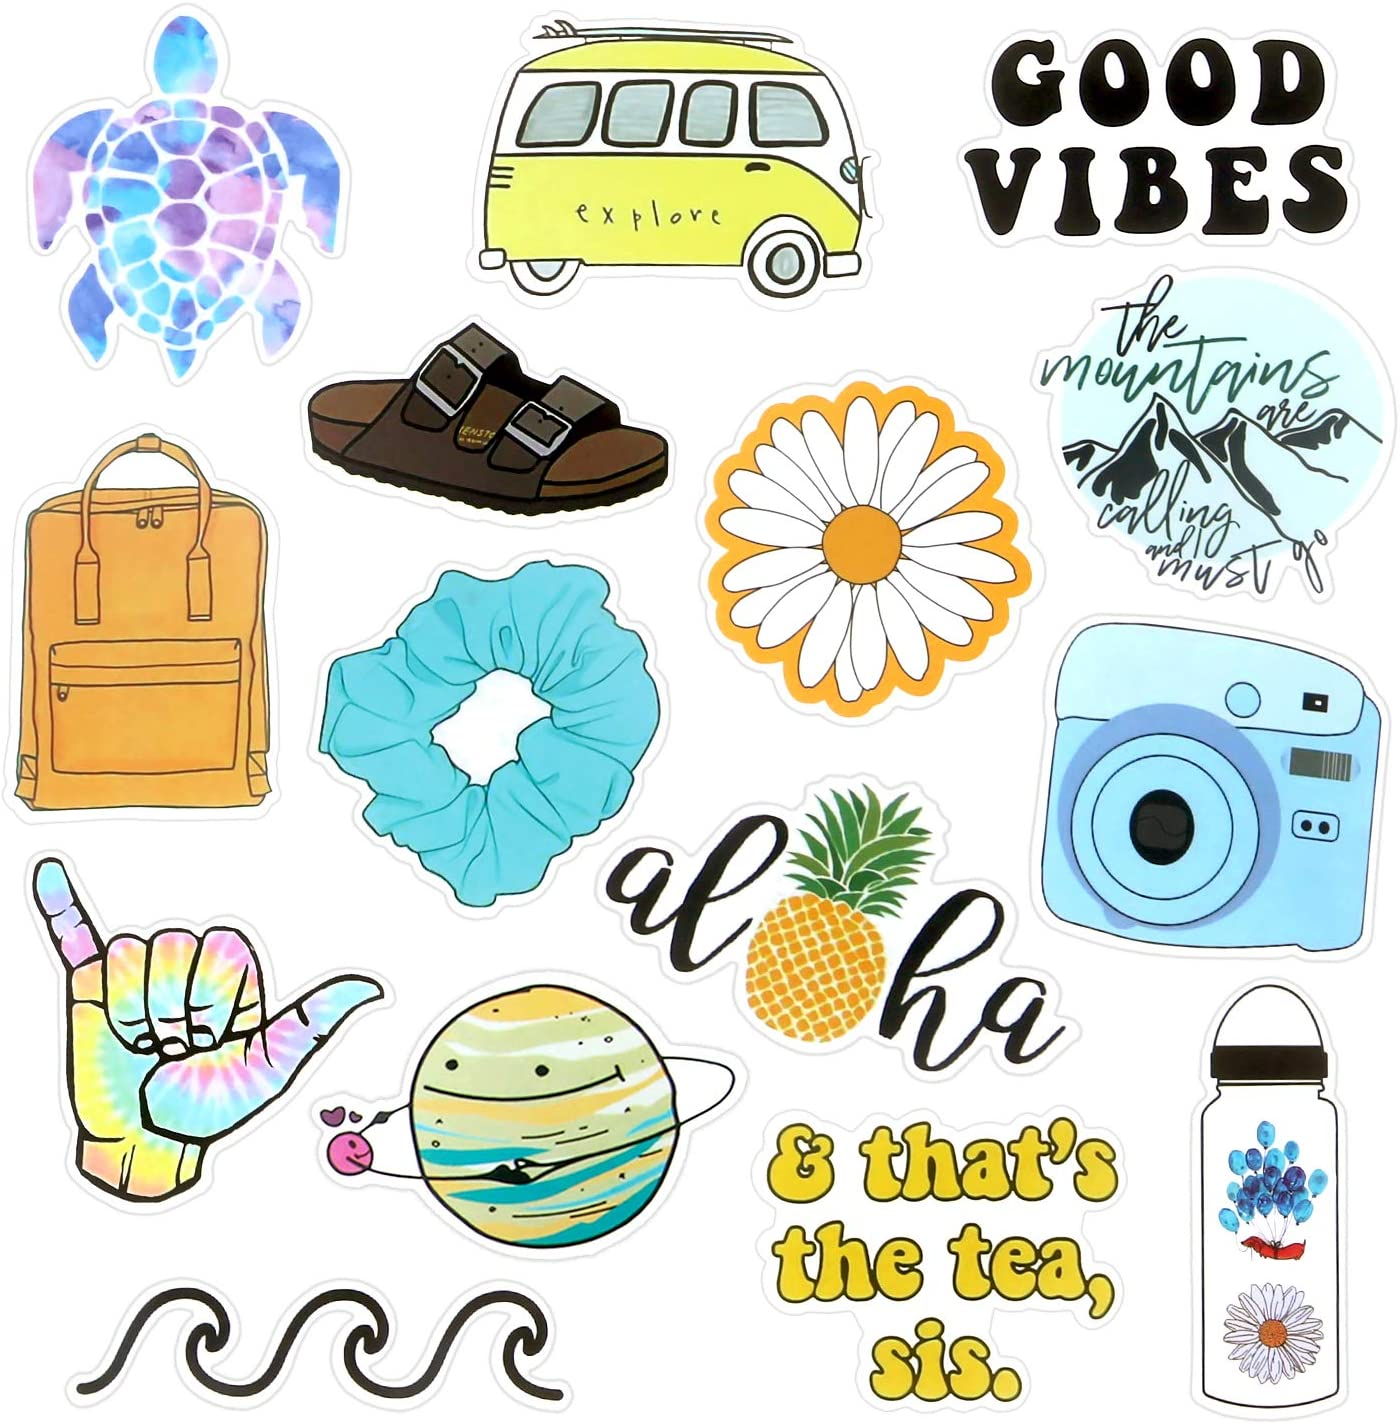 VSCO Stickers for Water Bottles, Trendy Aesthetic Laptop Stickers, Waterproof Stickers Vinyl Stickers for Teens VSCO Girl Essential Stuff Cute Stickers for Hydroflasks Computer Photo Sharing